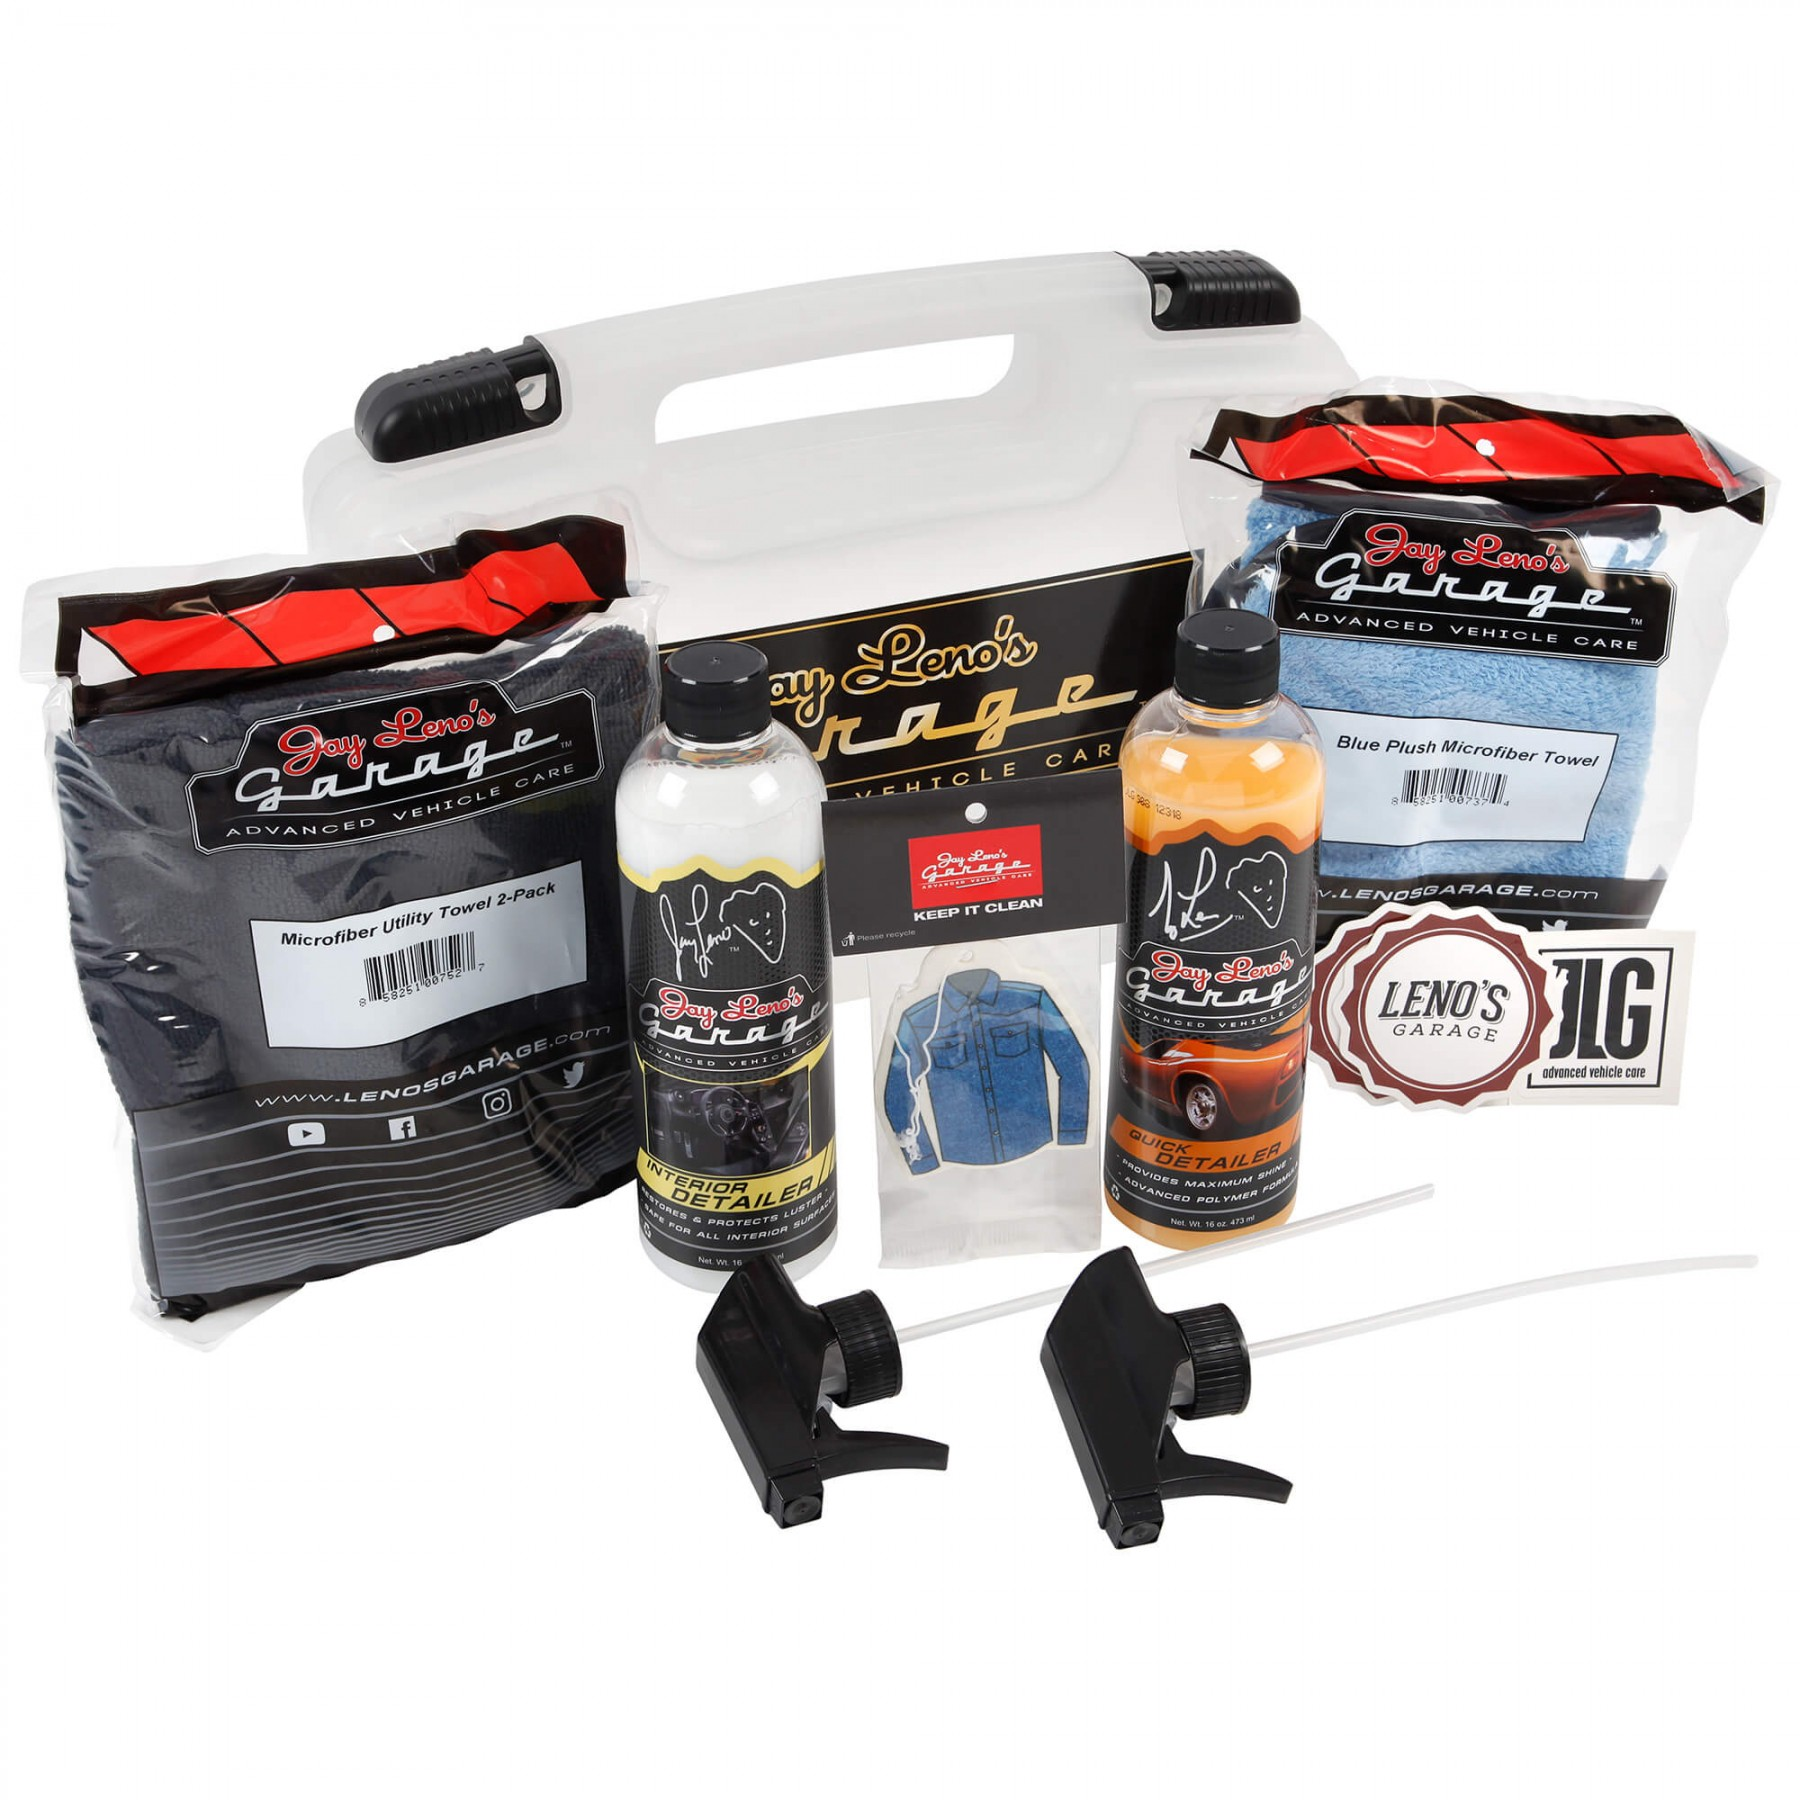 220 870 car show detail kit with case by jay leno 39 s garage for Kit di case di garage